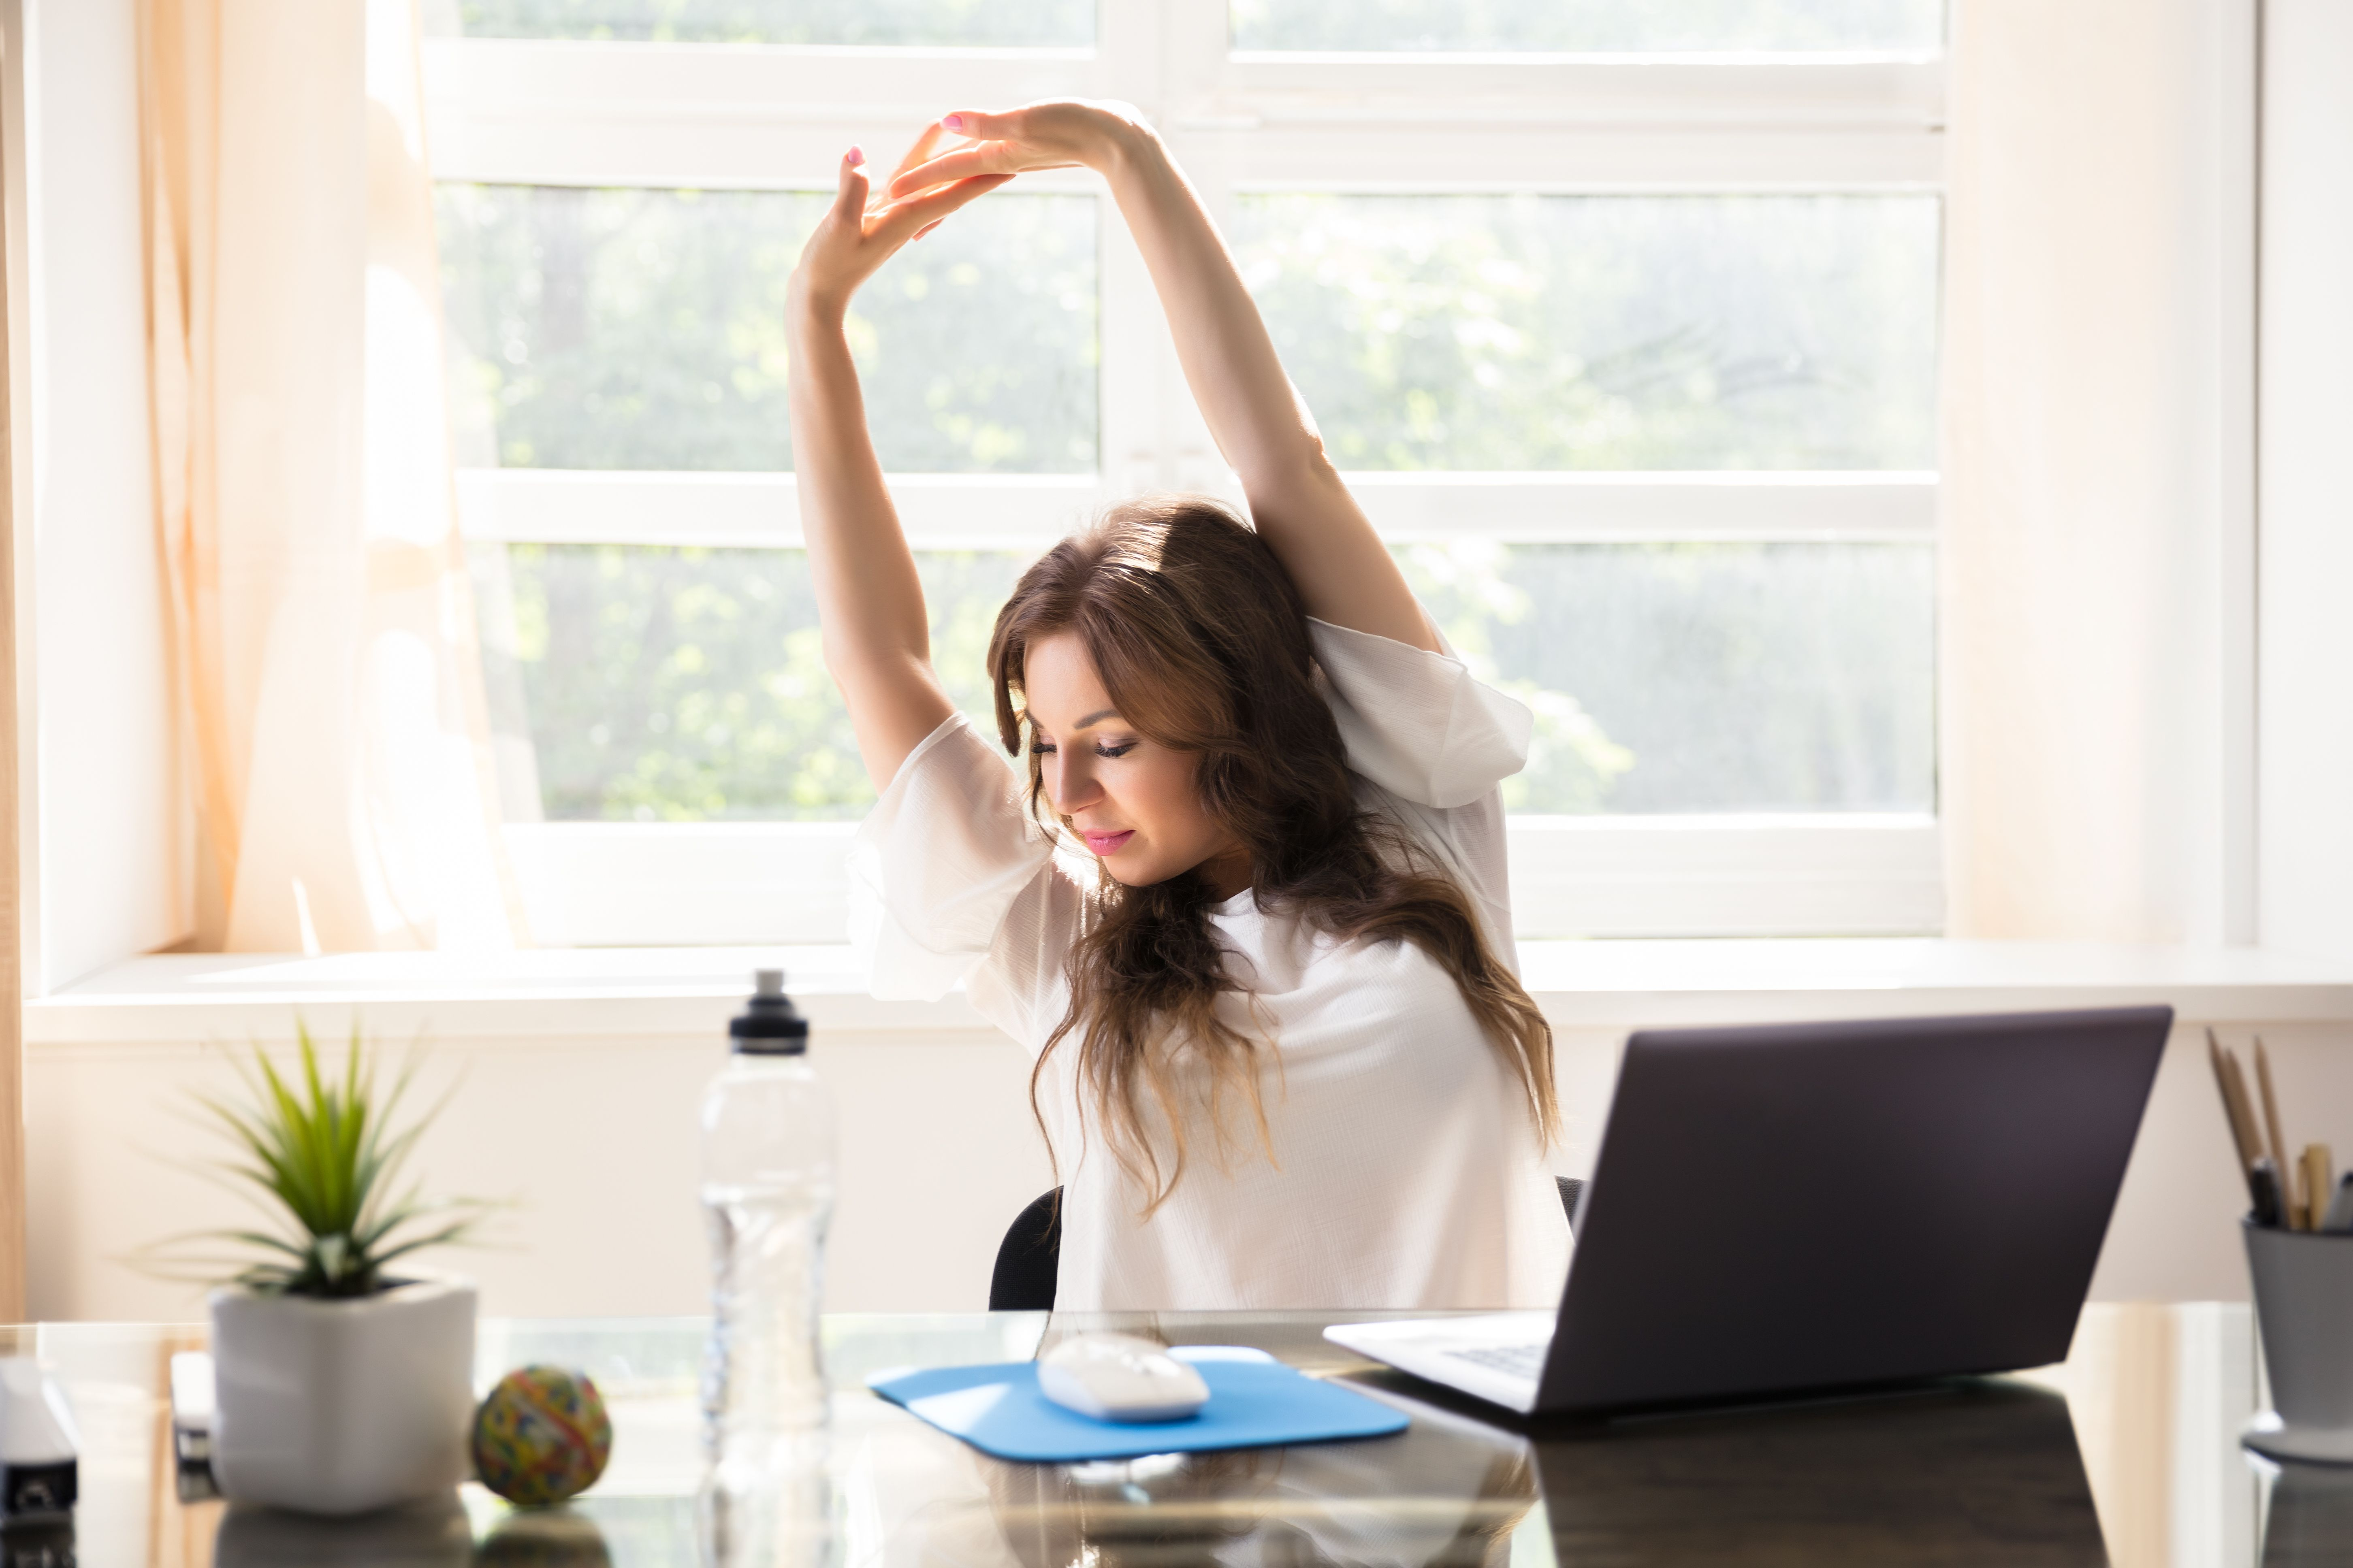 how to improve circulation in arms